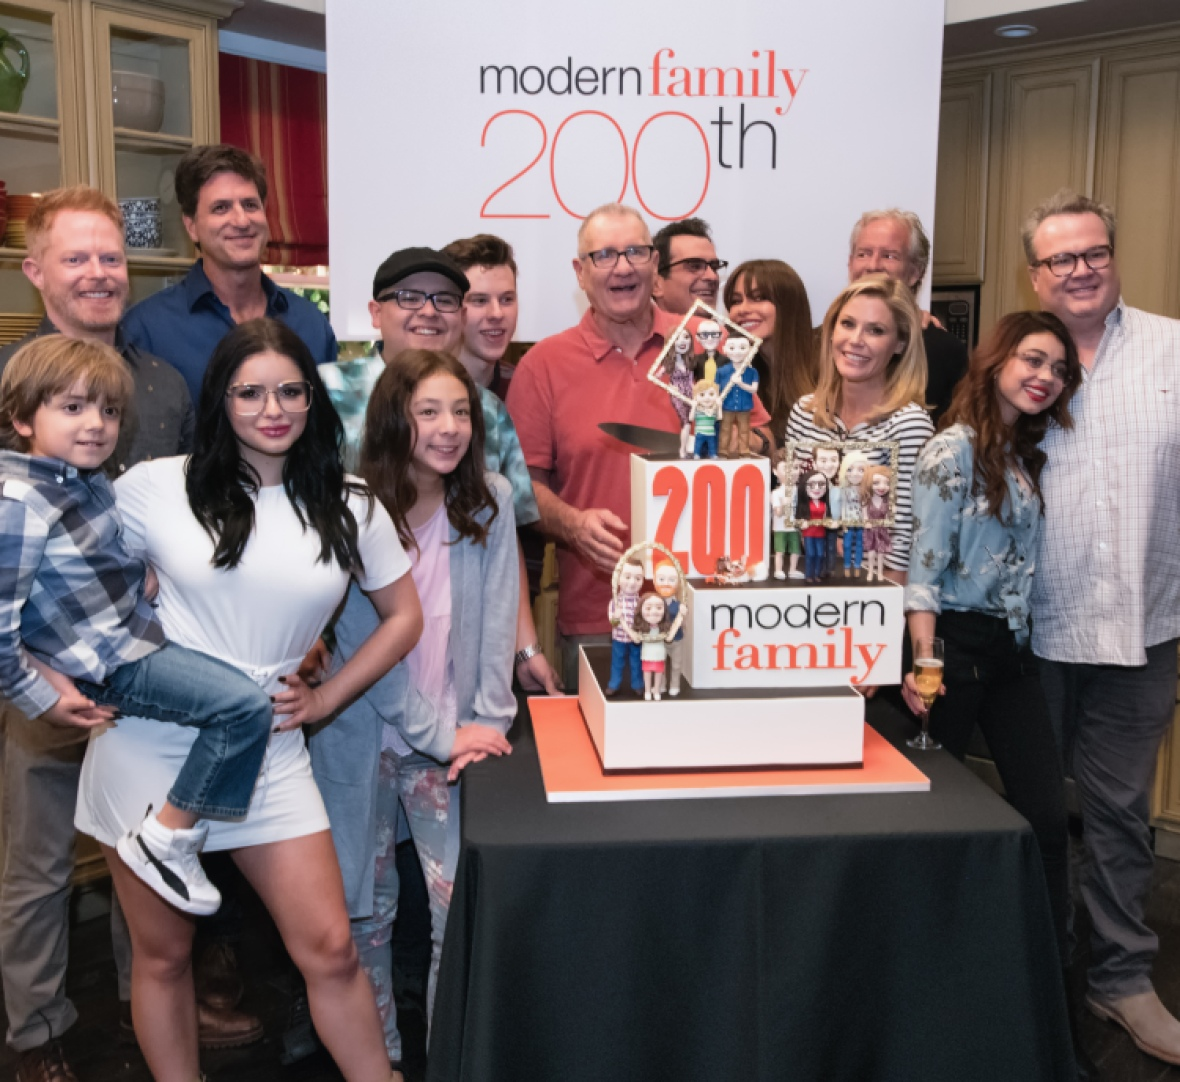 'modern family' getty images